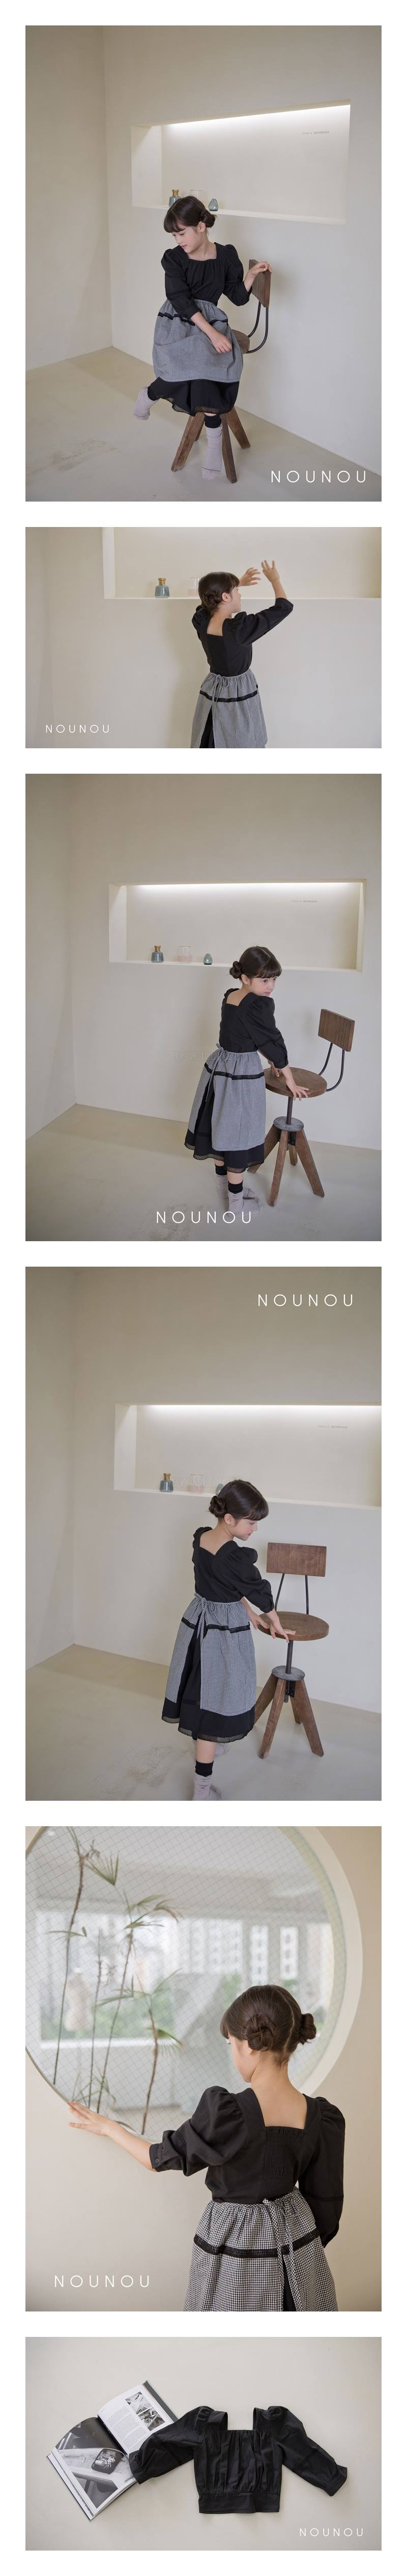 NOUNOU - Korean Children Fashion - #Kfashion4kids - Square Blouse